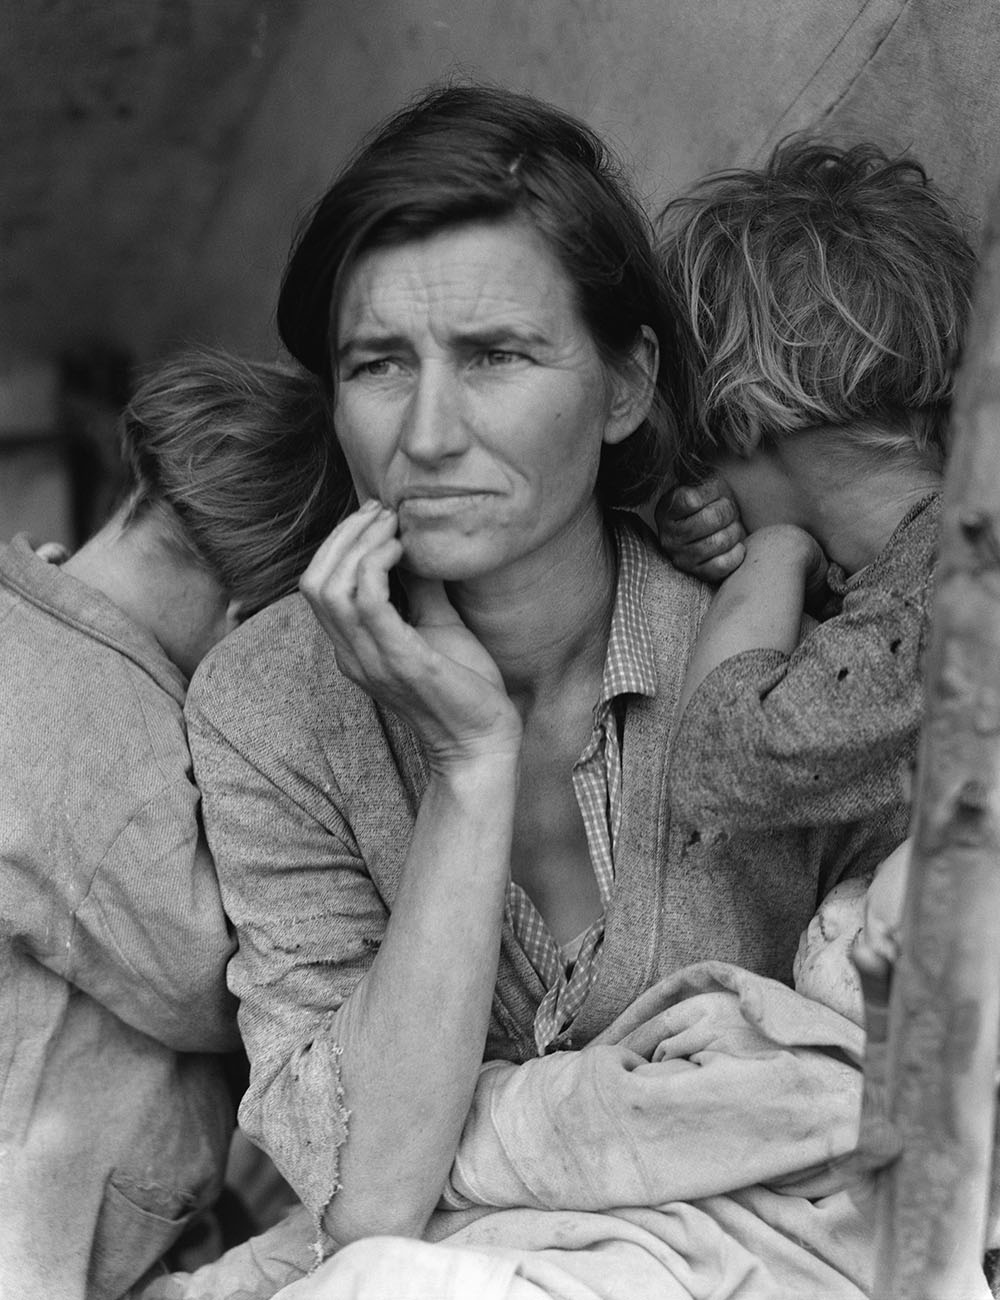 A black and white photo shows a desperate-looking woman sitting with two children who bury their faces against her shoulders.